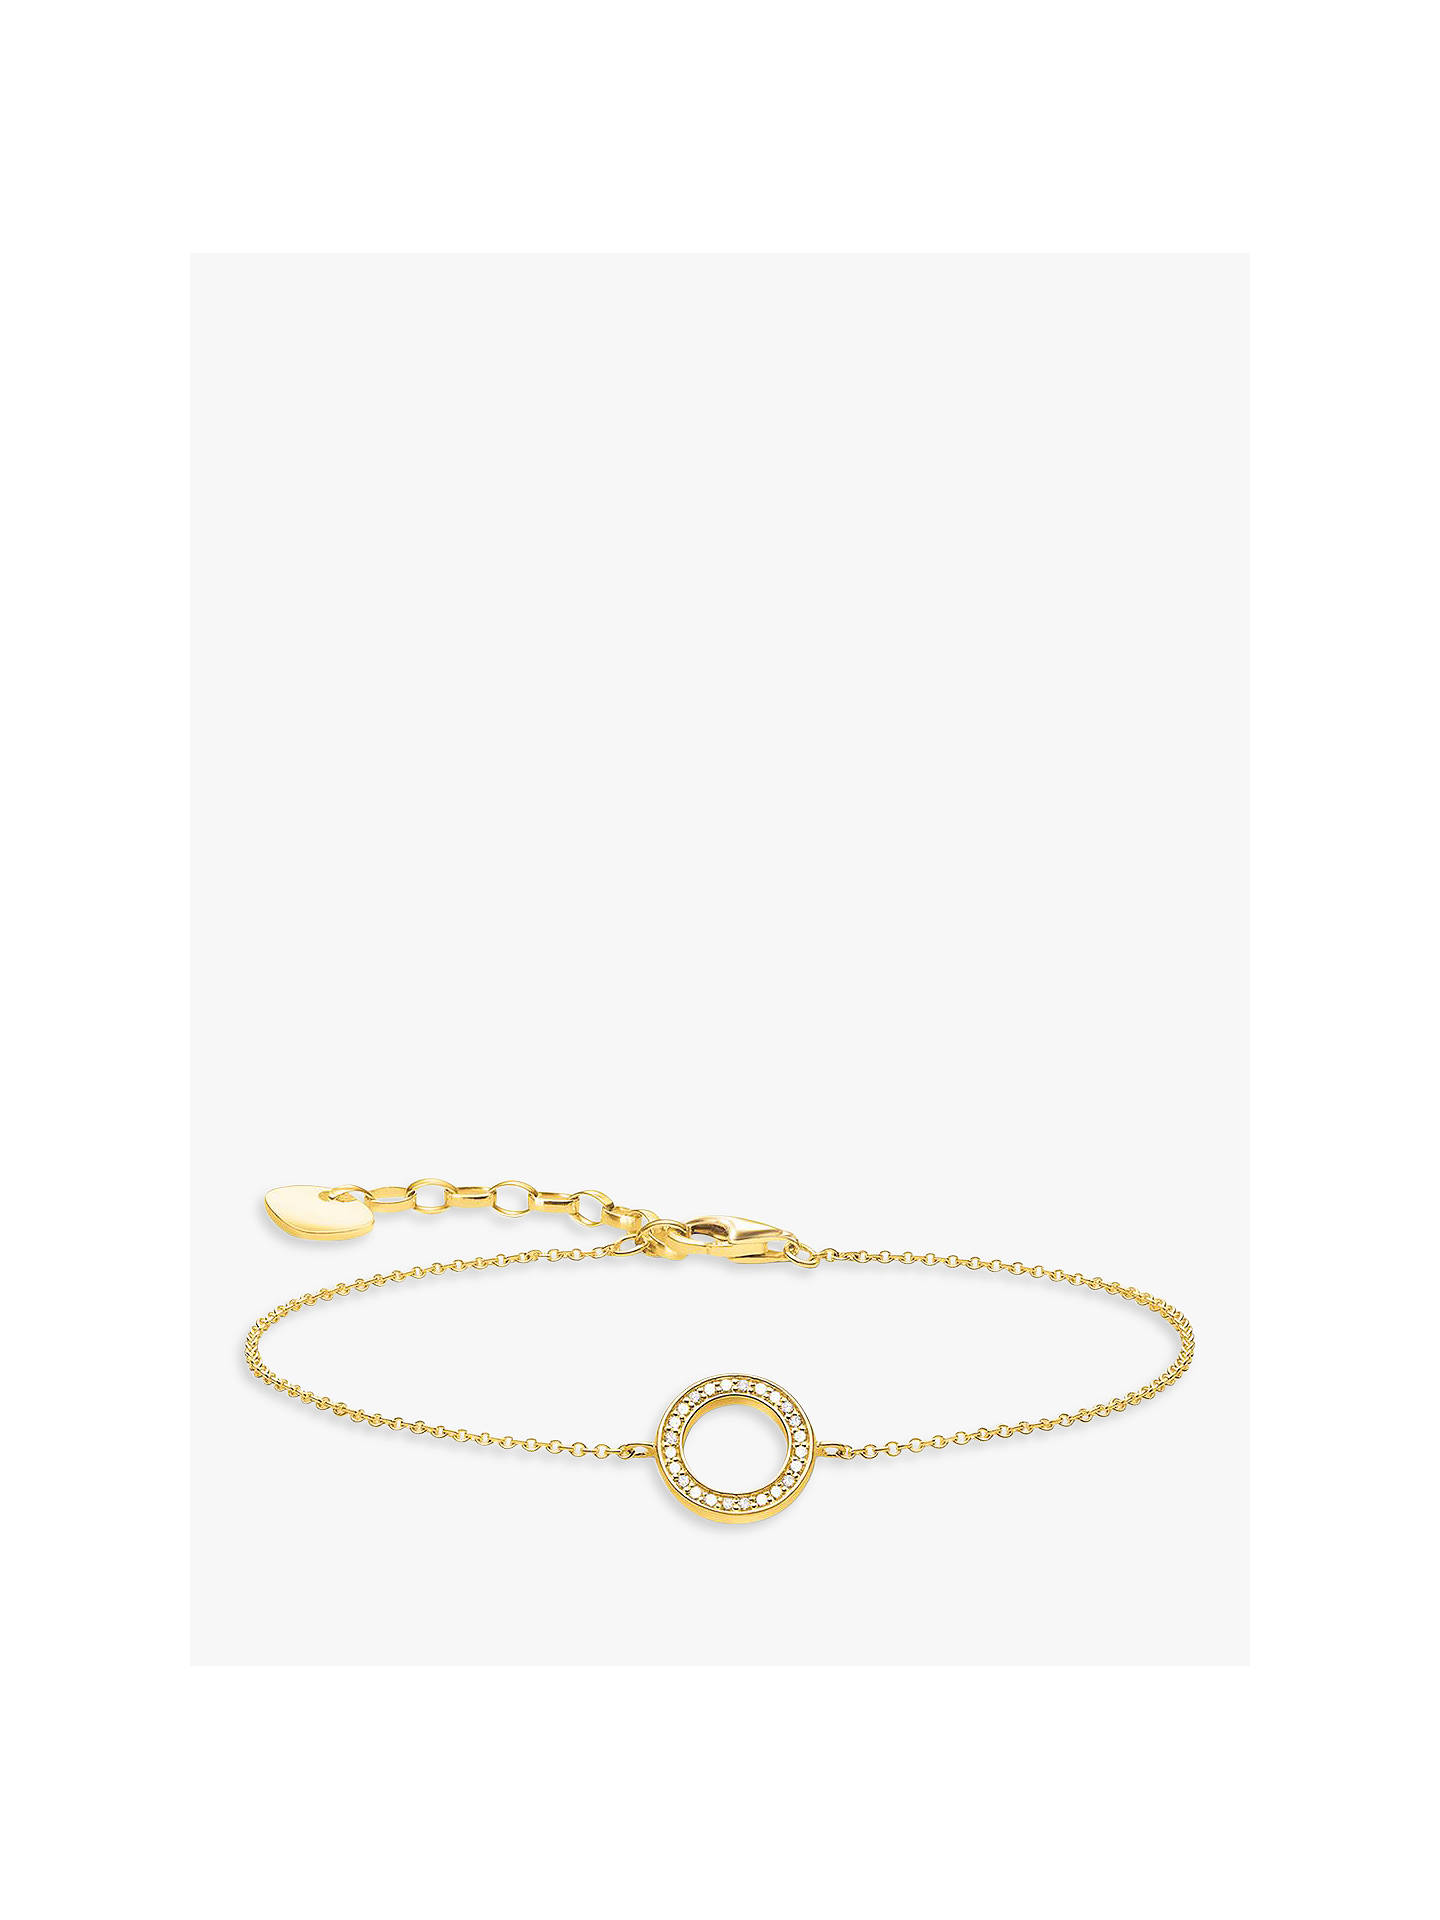 BuyTHOMAS SABO Glam & Soul Pave Circle Chain Bracelet, Gold Online at johnlewis.com